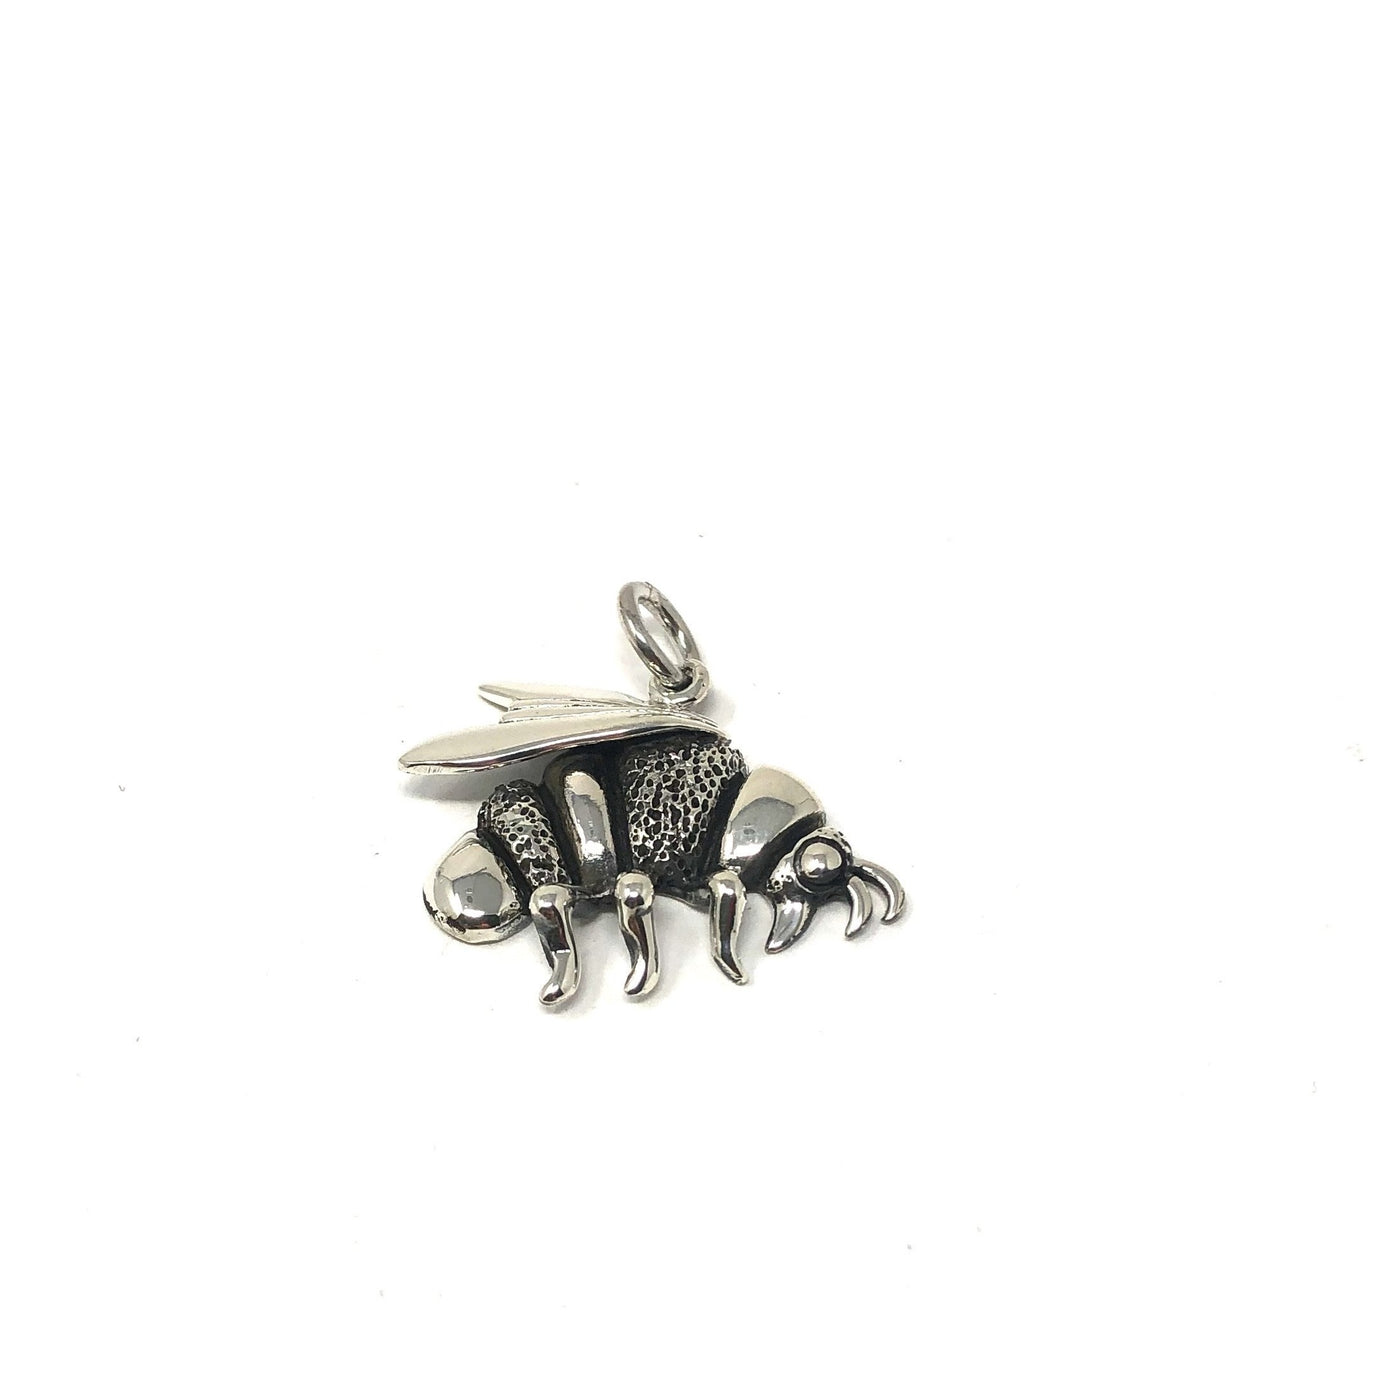 MM 9 BEE PENDANT